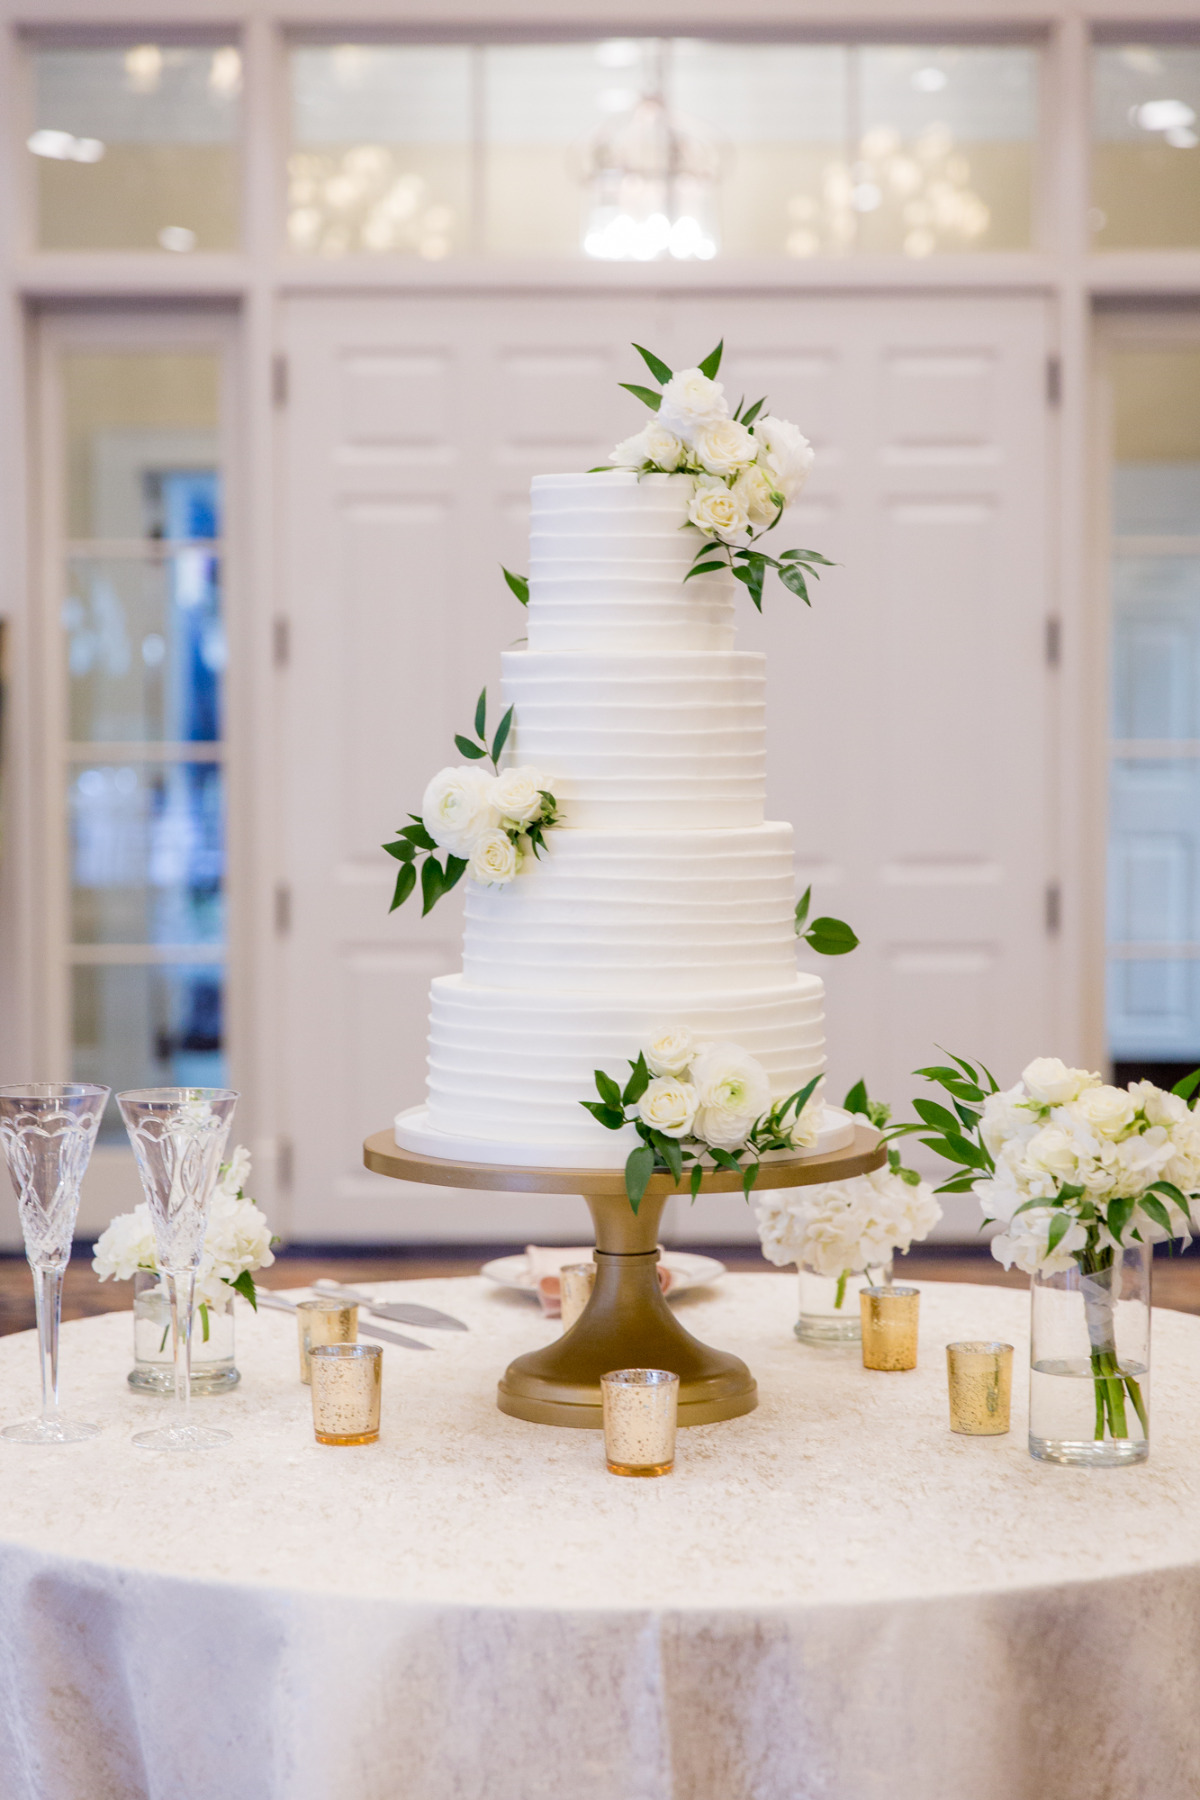 4 tier white wedding cake